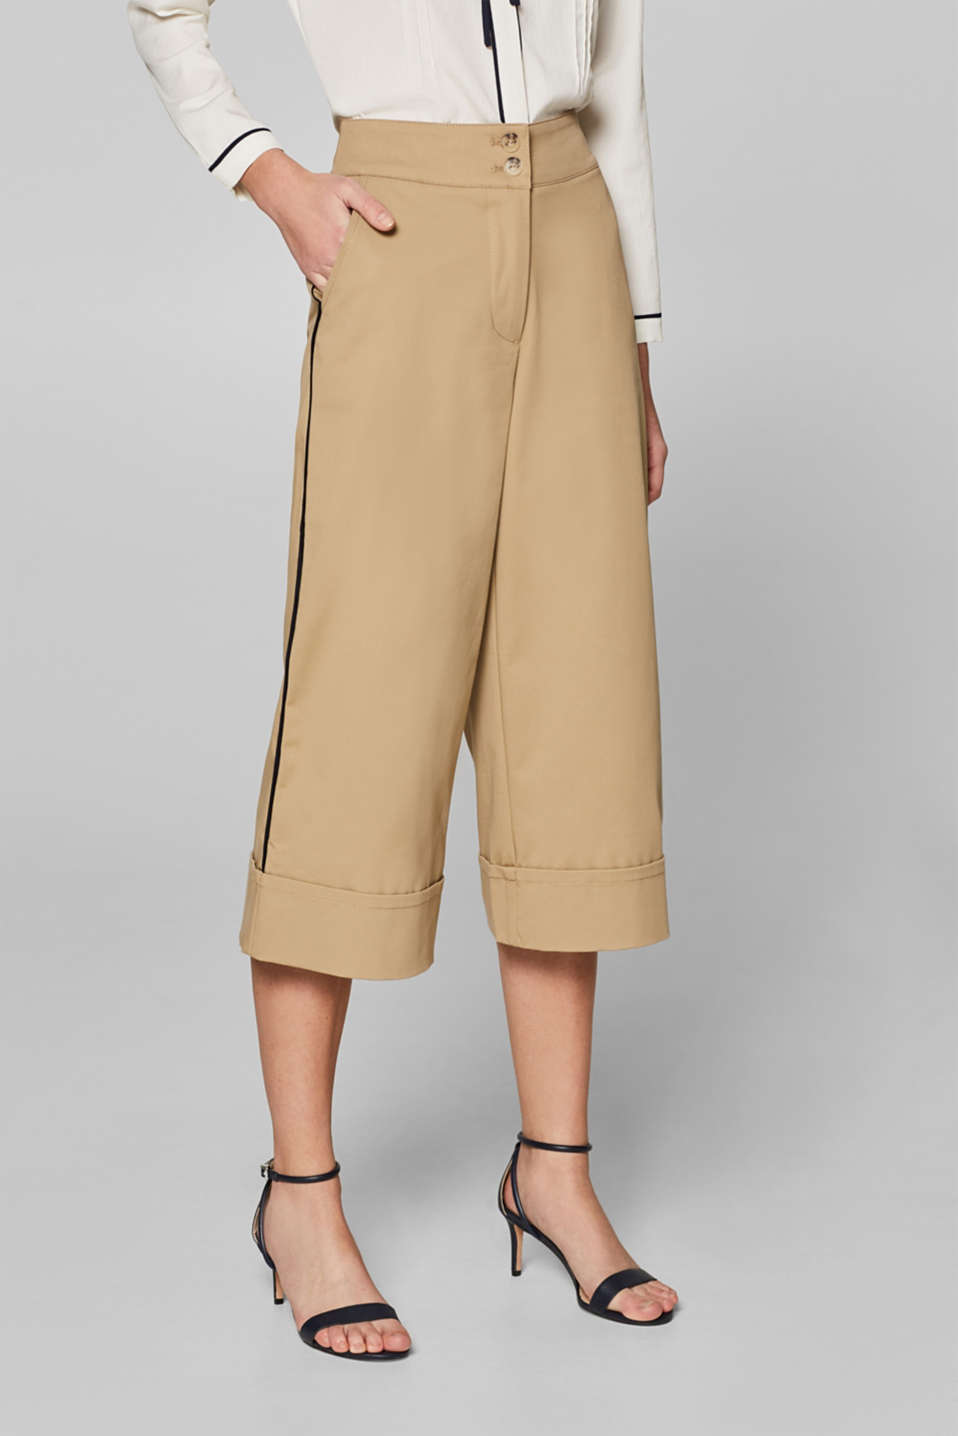 Esprit - Culottes with piping at the side and stretch for comfort